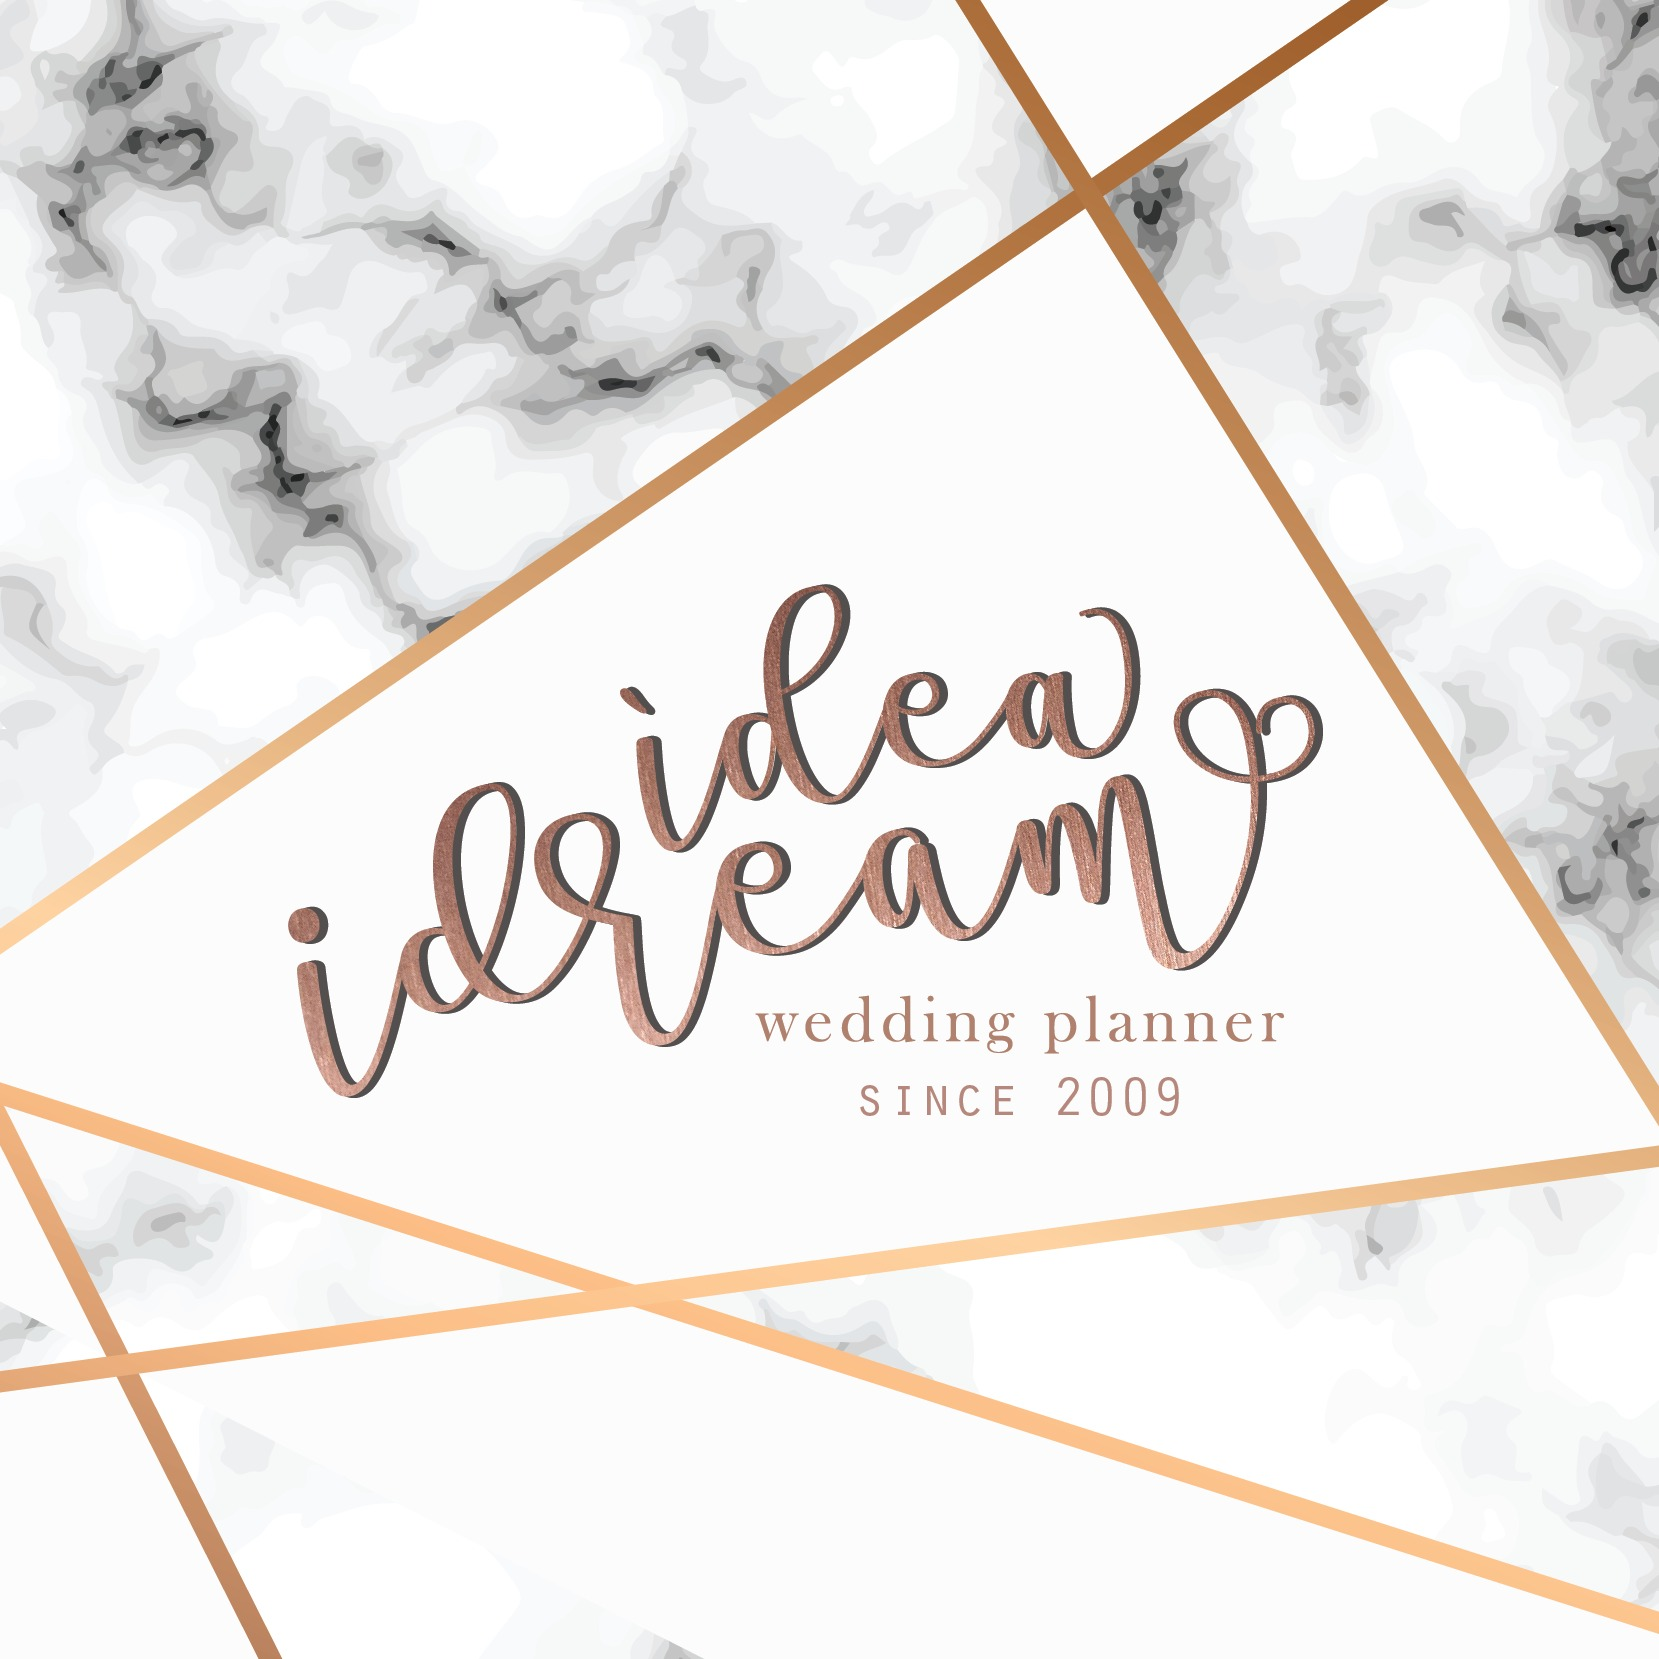 idea iDream Wedding Planner